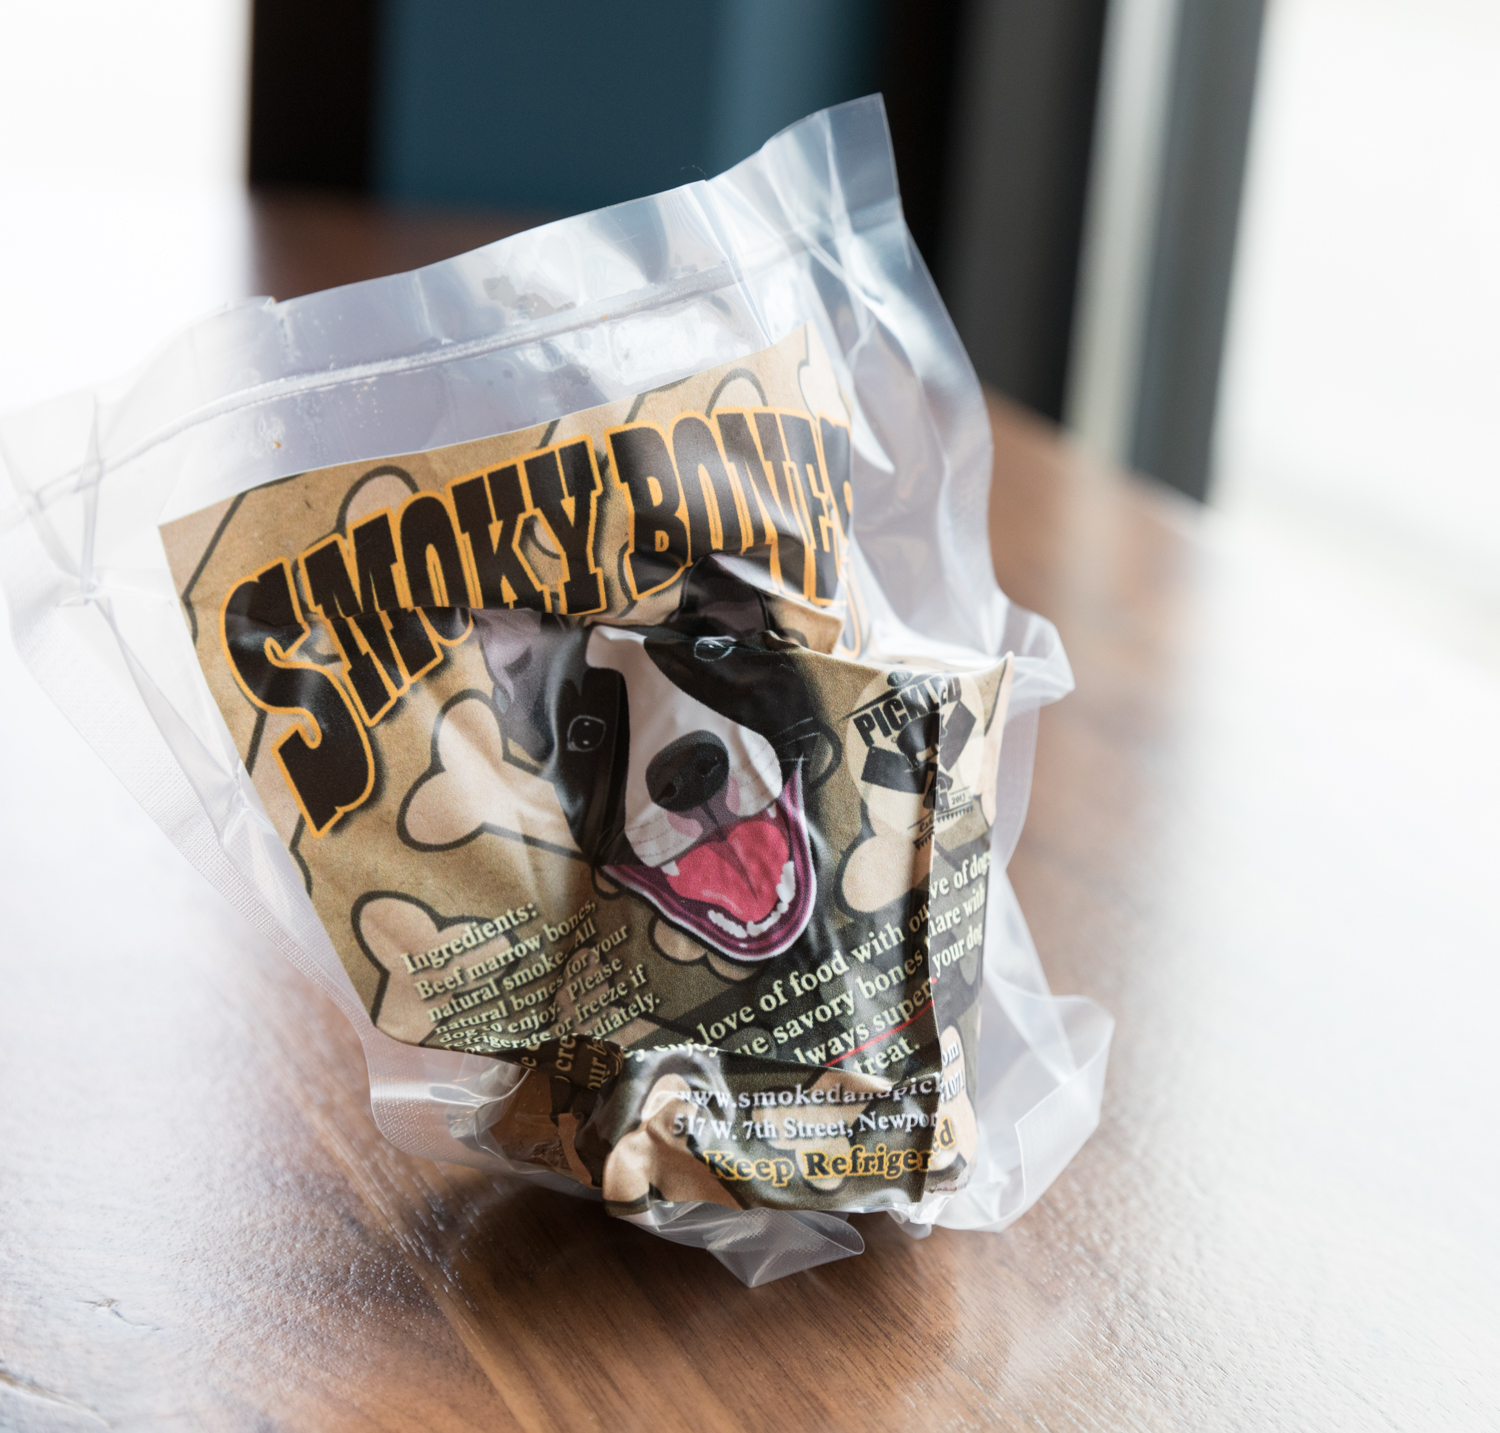 First product Gary made was the Smoky Bones dog treats.{ }They are made from natural beef femur bones that have been slow smoked with meaty bits and bone marrow for your dog to enjoy.  / Image: Marlene Rounds // Published: 3.12.19